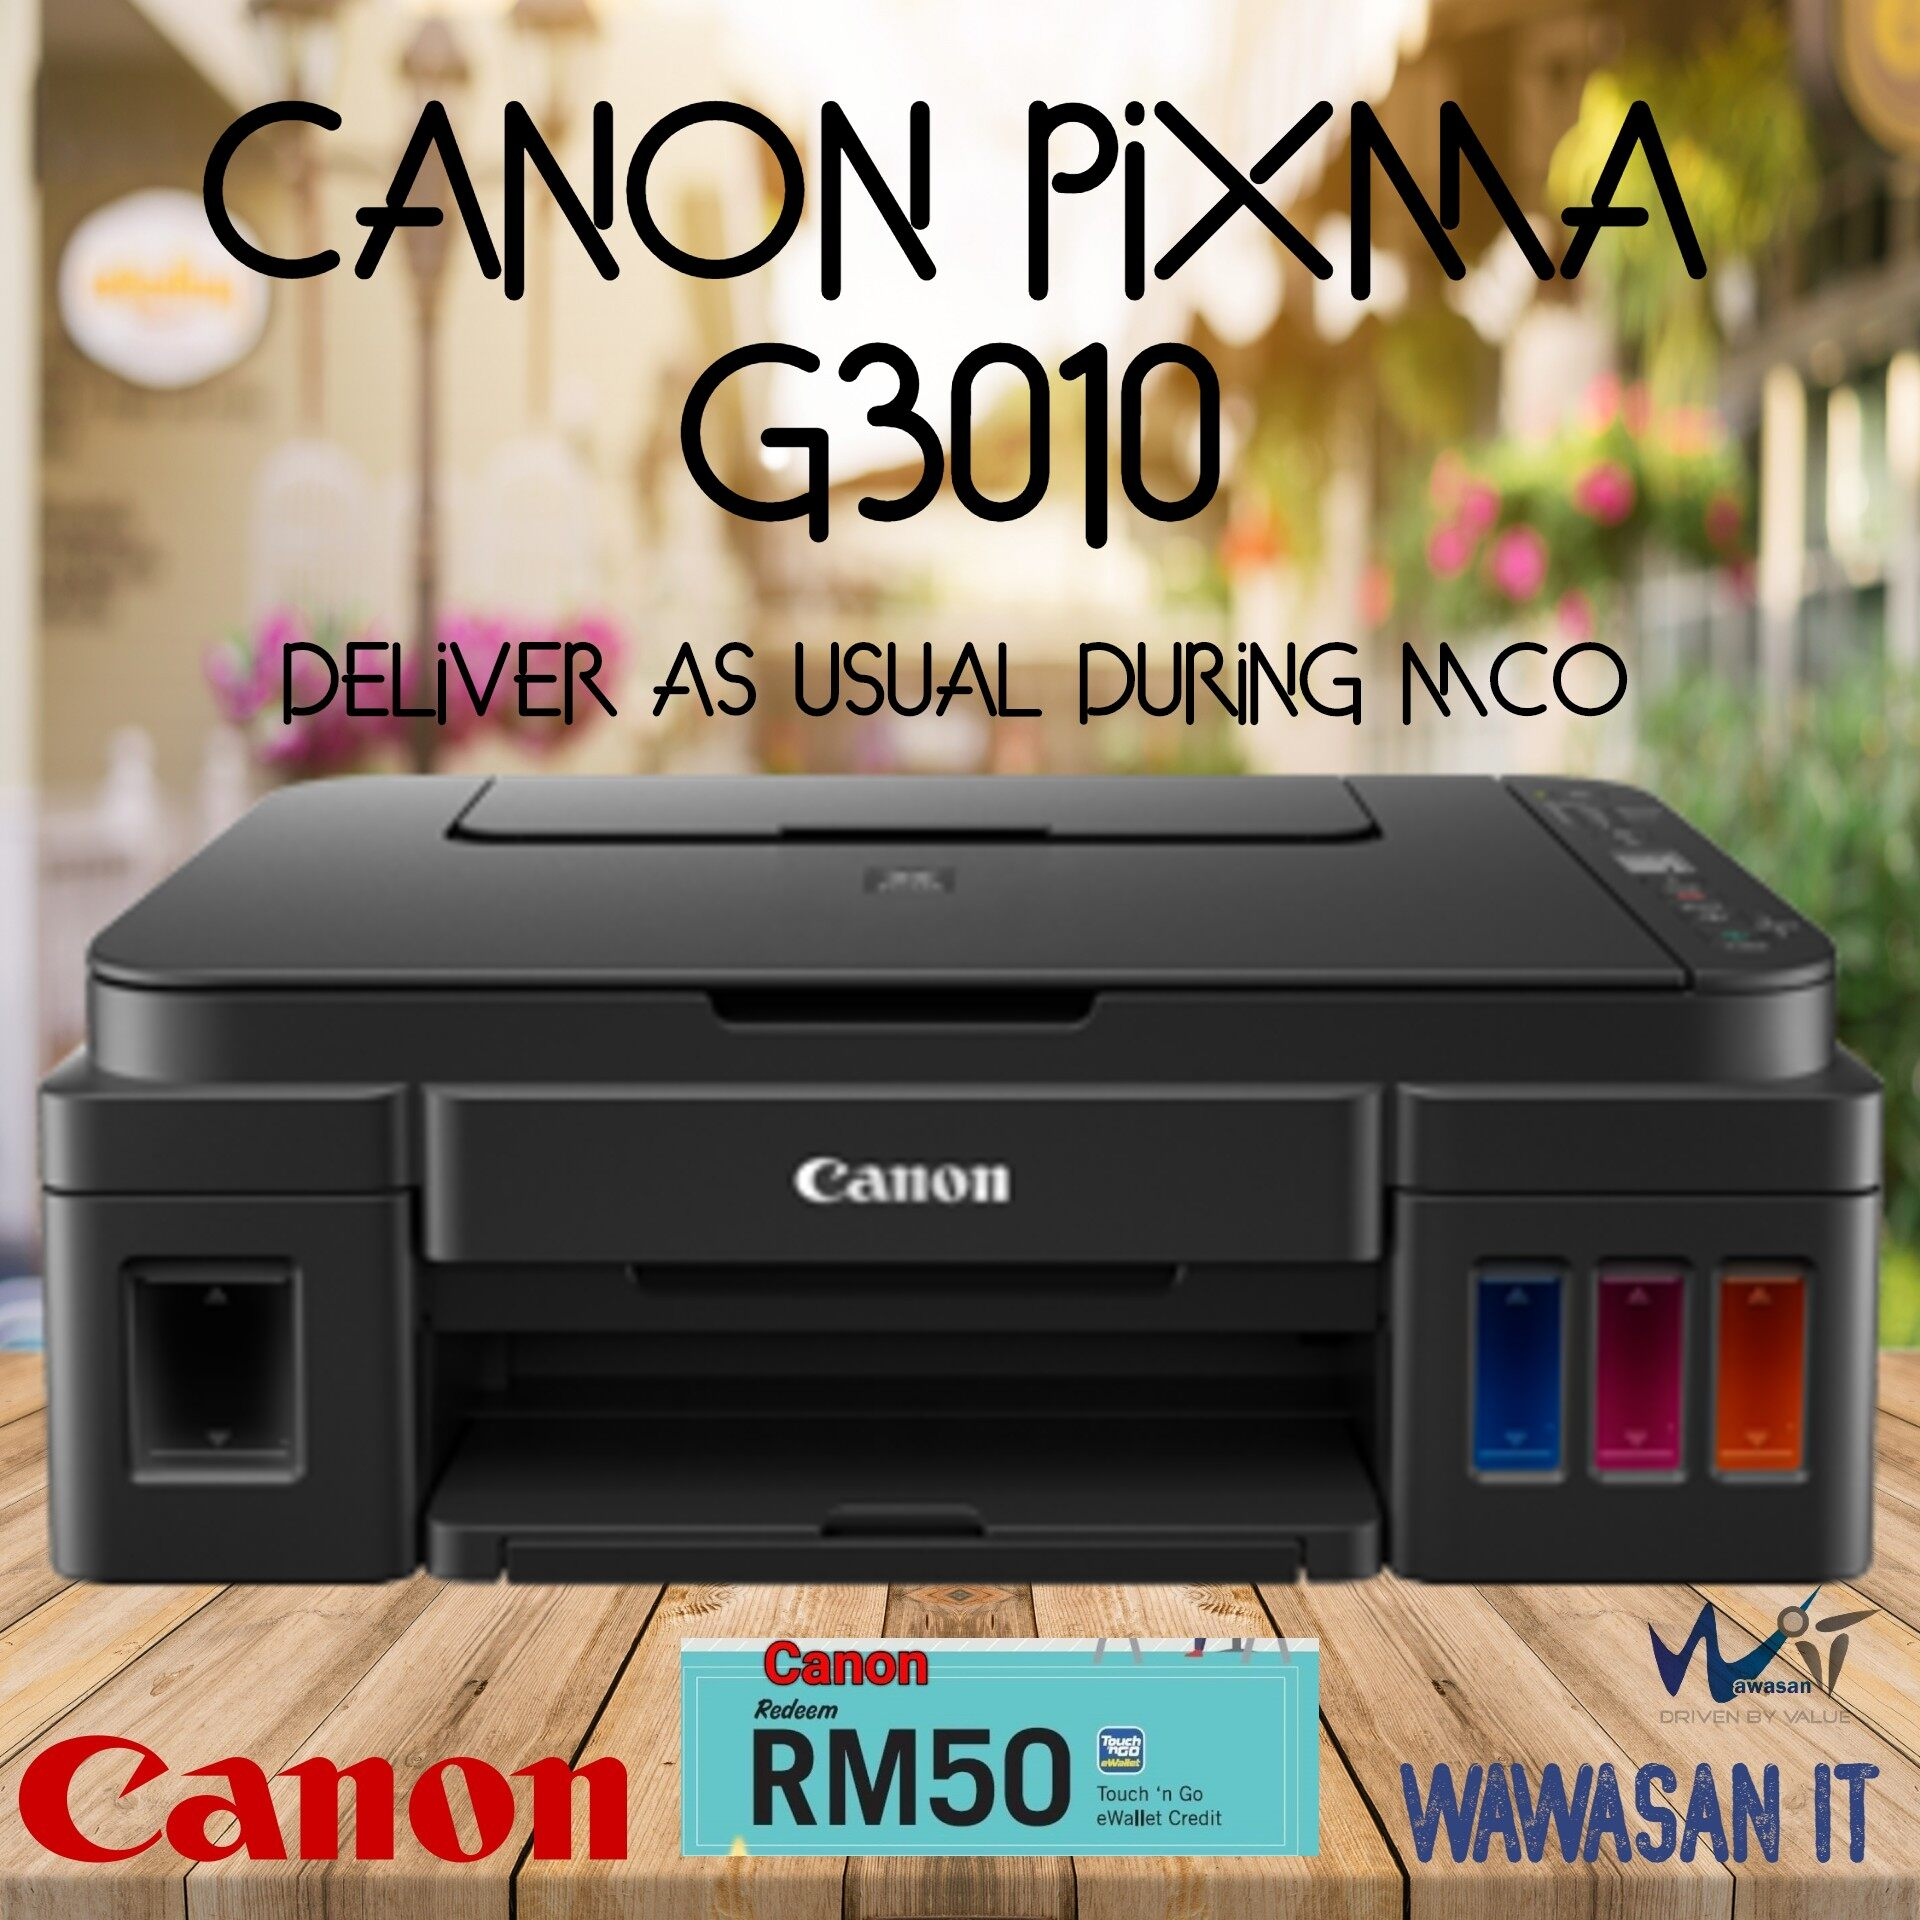 CANON PIXMA G3010 Refillable Ink Tank Wireless All-In-One for High Volume Printing, Similar model Canon G3010, Canon G4010 ,HP 415, Epson L3110, Epson L3150, Brother DCP T510w , Brother DCP T310, Brother DCP T710w, Brother DcP T910DW